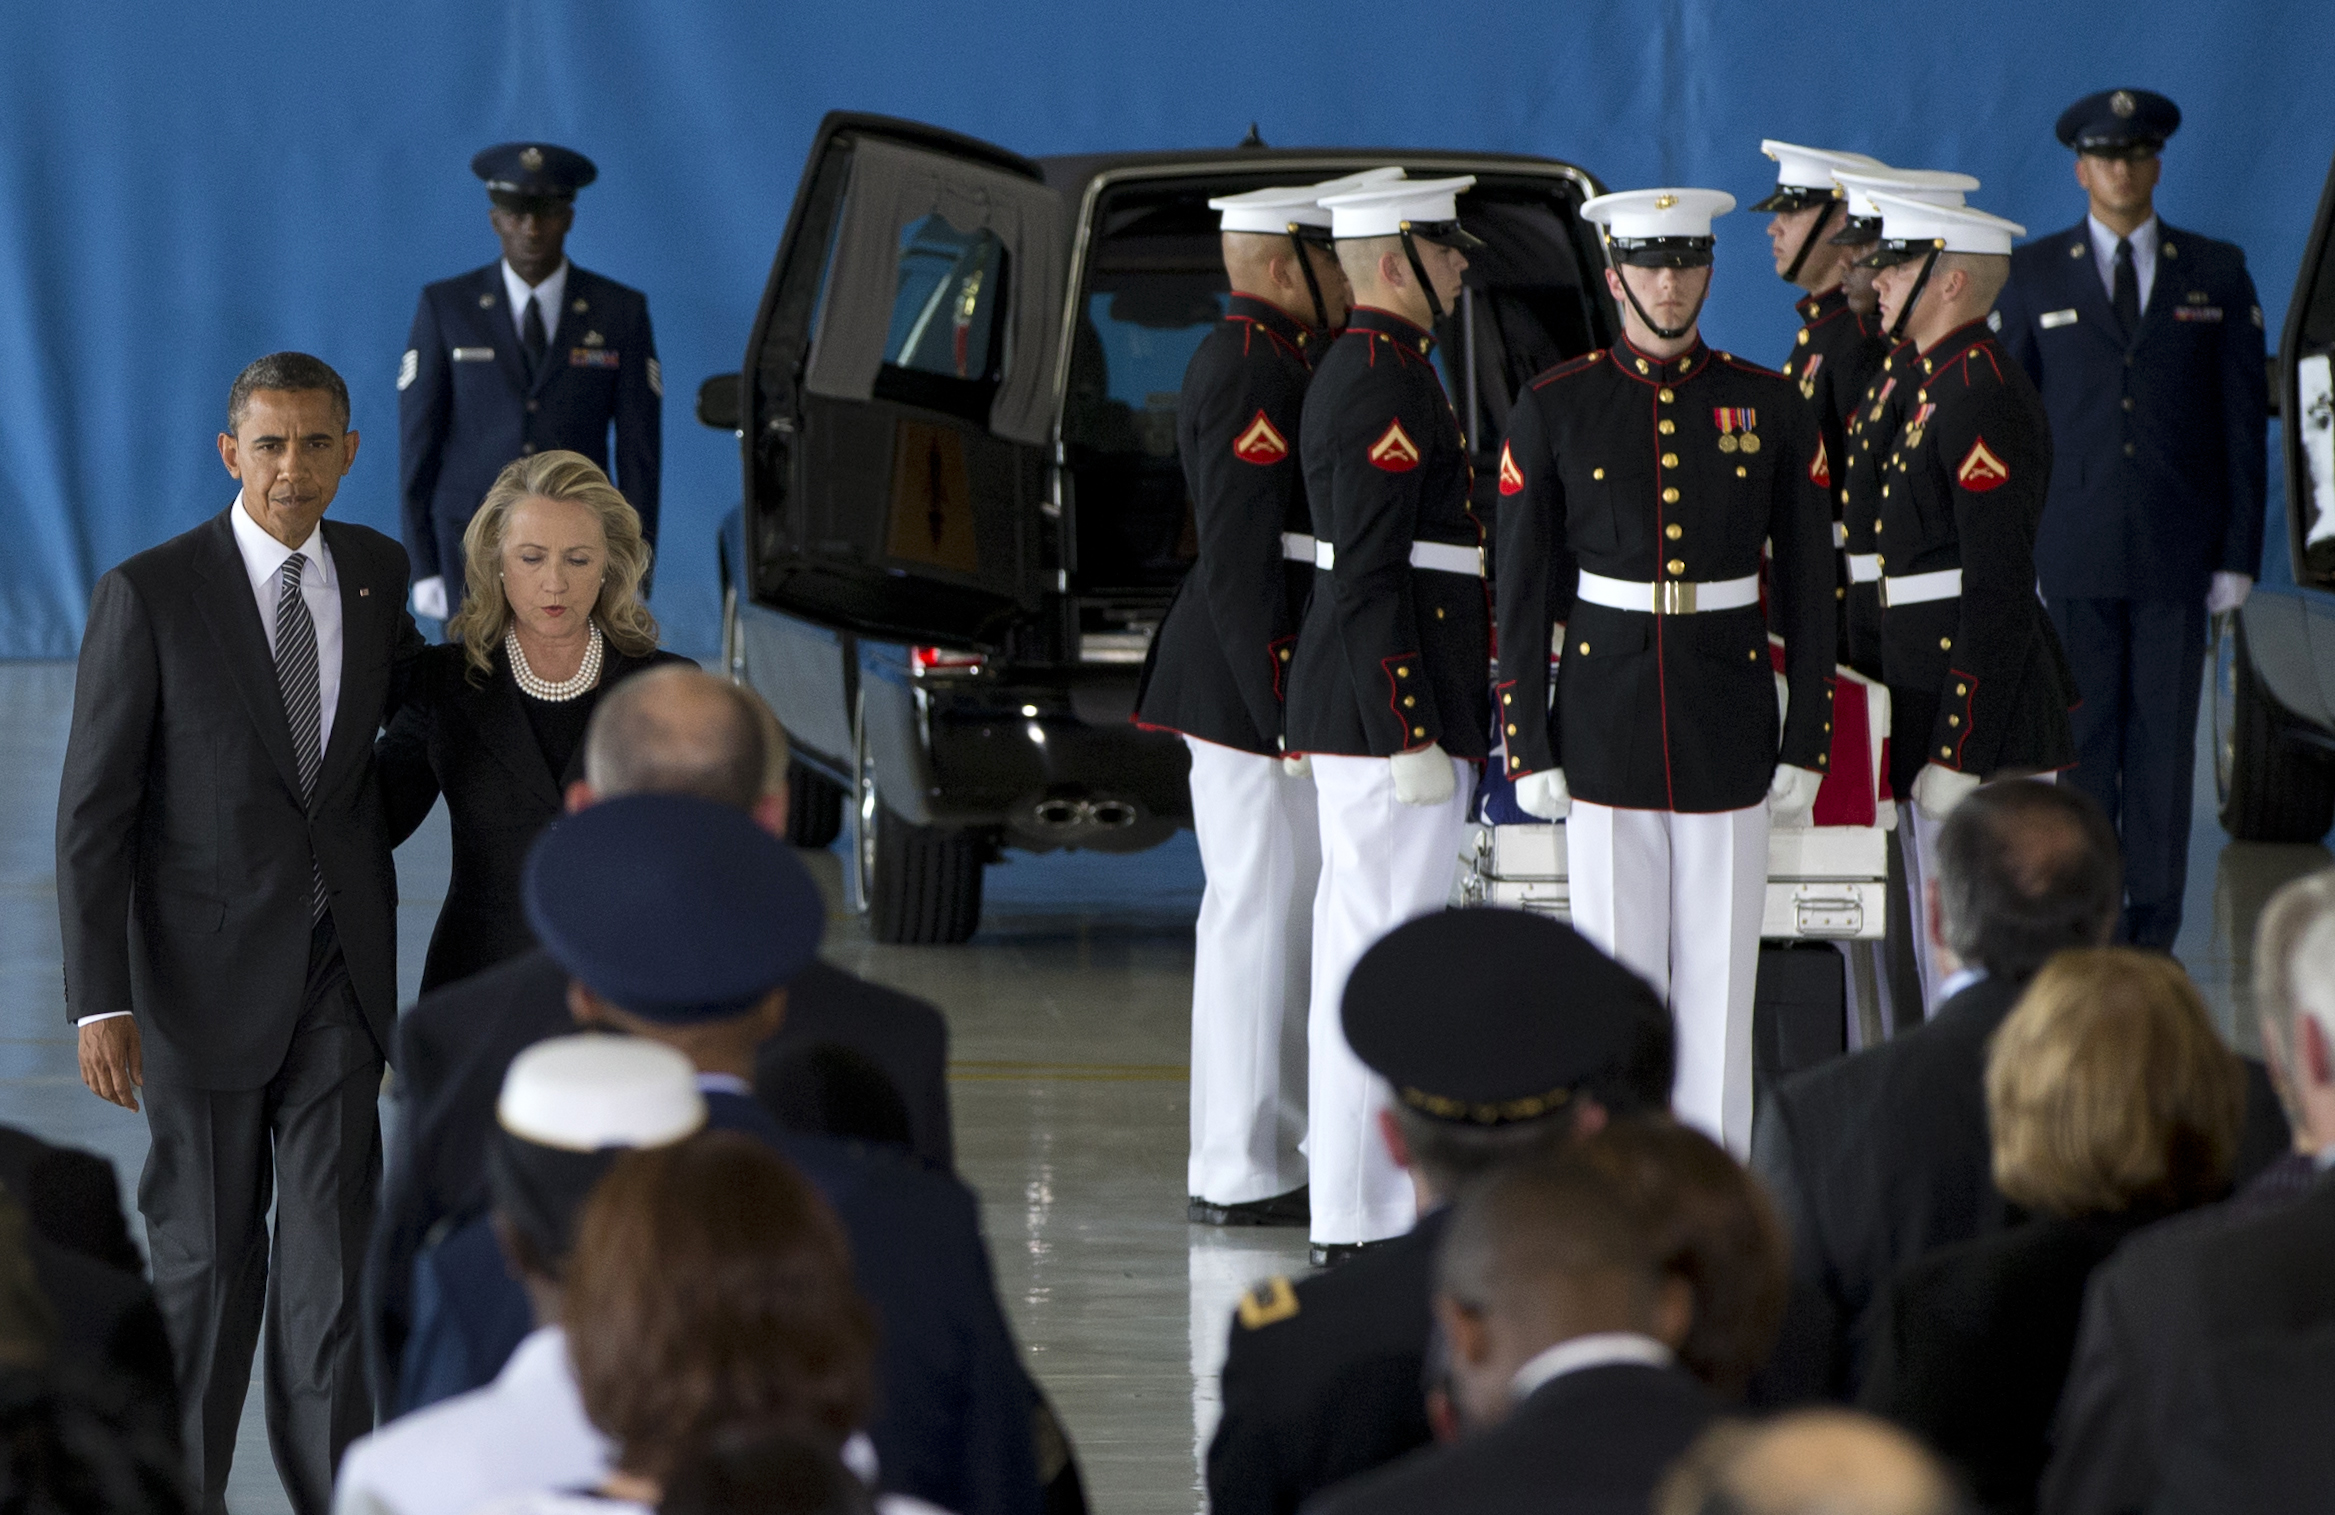 President Barack Obama and Secretary of State Hillary Rodham Clinton walk back to their seats during the Transfer of Remains Ceremony. (Carolyn Kaster/AP)